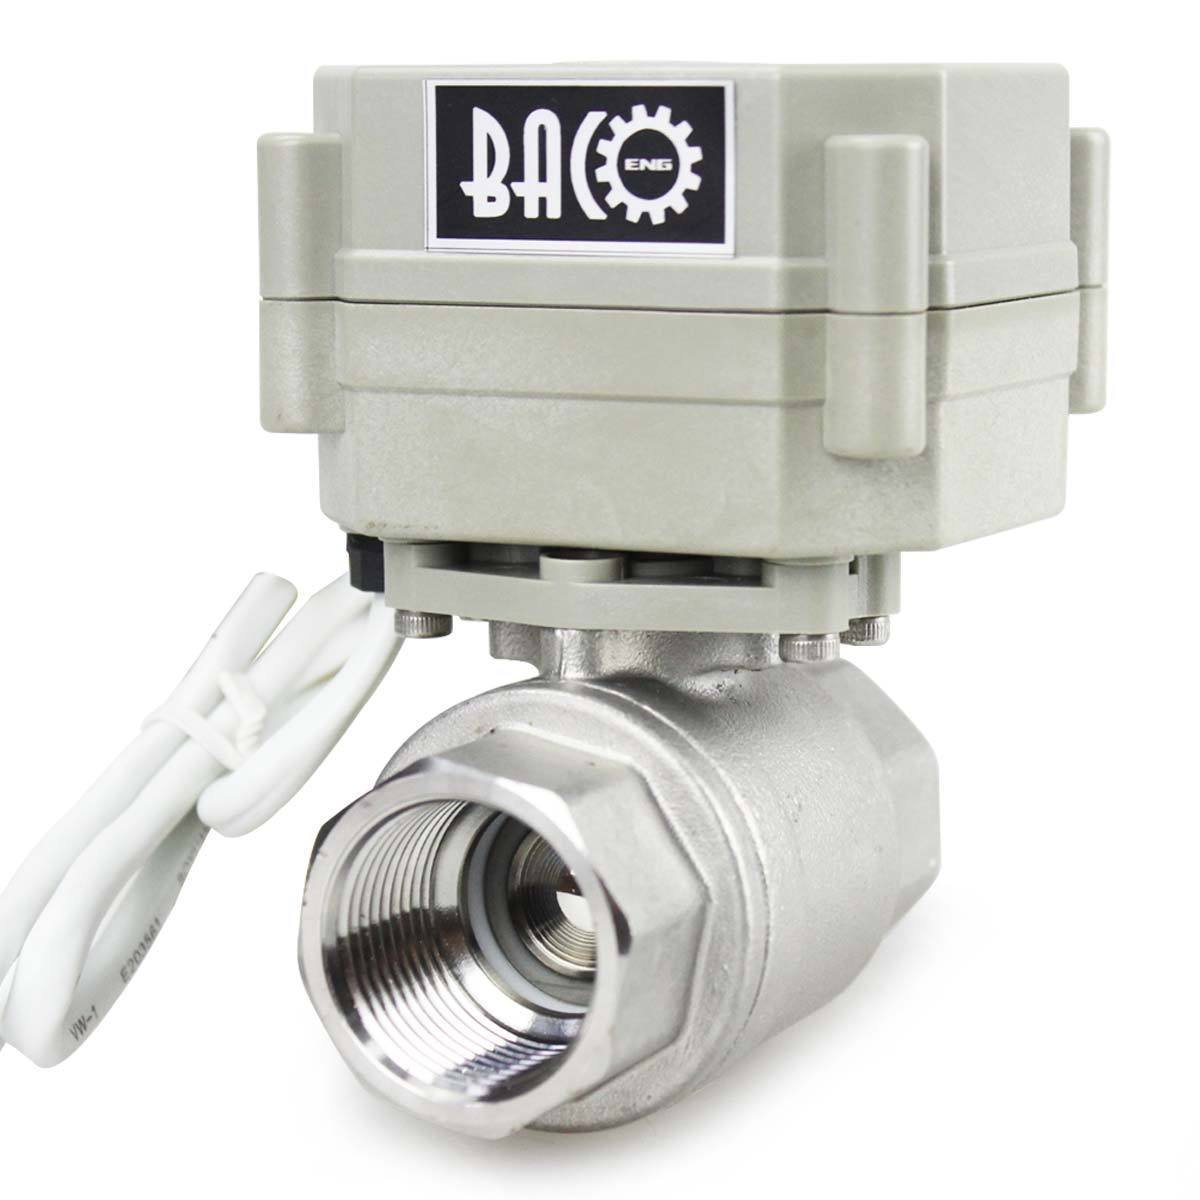 AC110-230V CR202 2 Wires Normally Closed Electric Ball Valve BACOENG 1 DN25 Stainless Steel BSP 2 Port Motorized Ball Valve